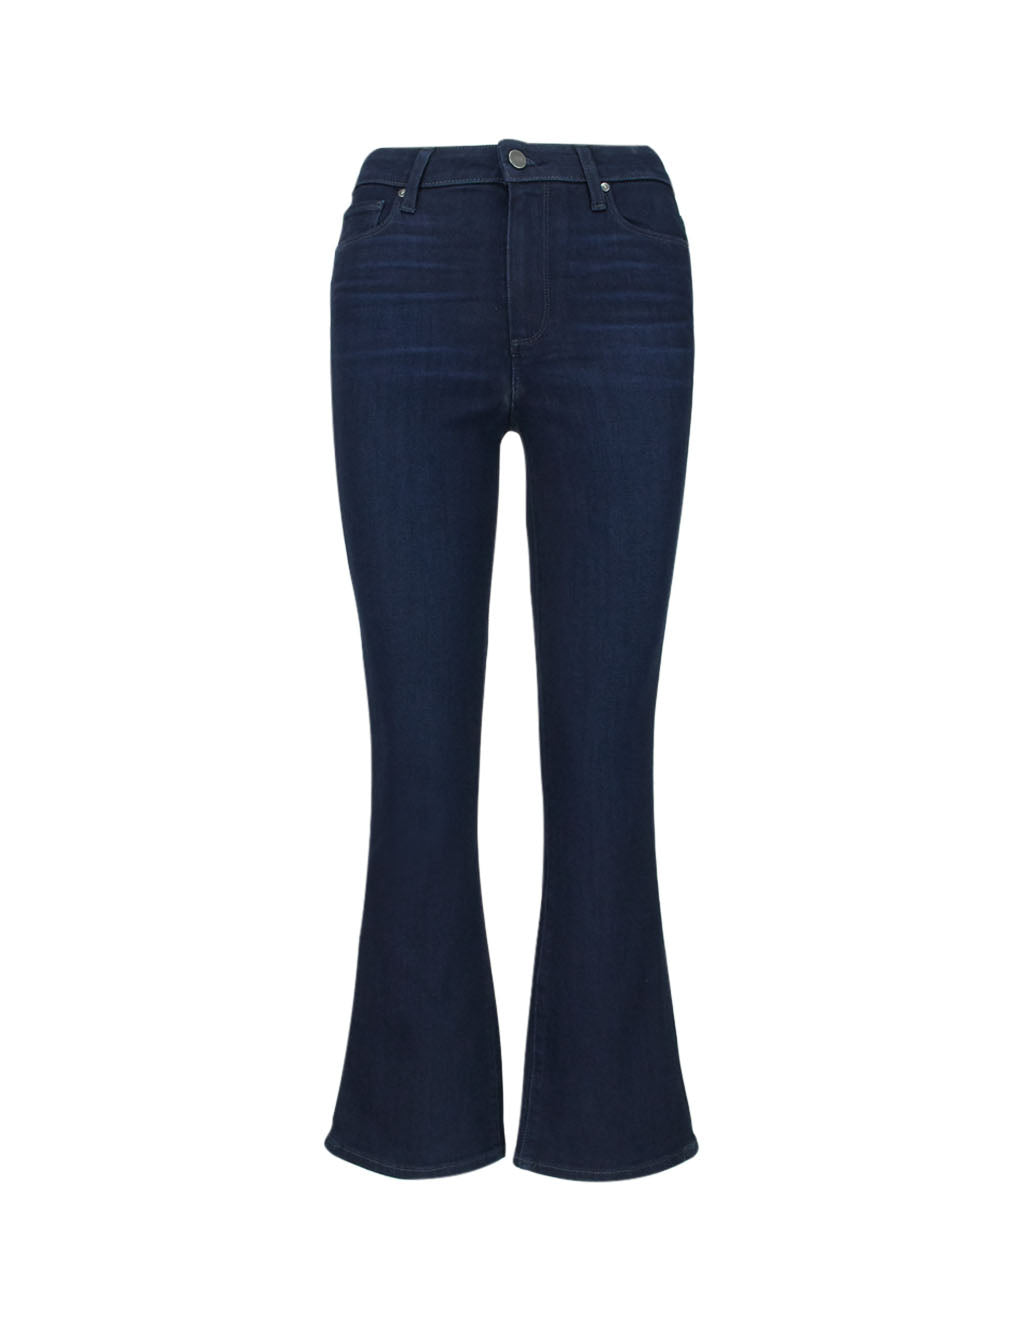 PAIGE Women's Giulio Fashion Telluride Claudine Ankle Flare Jeans 560F467475W7475